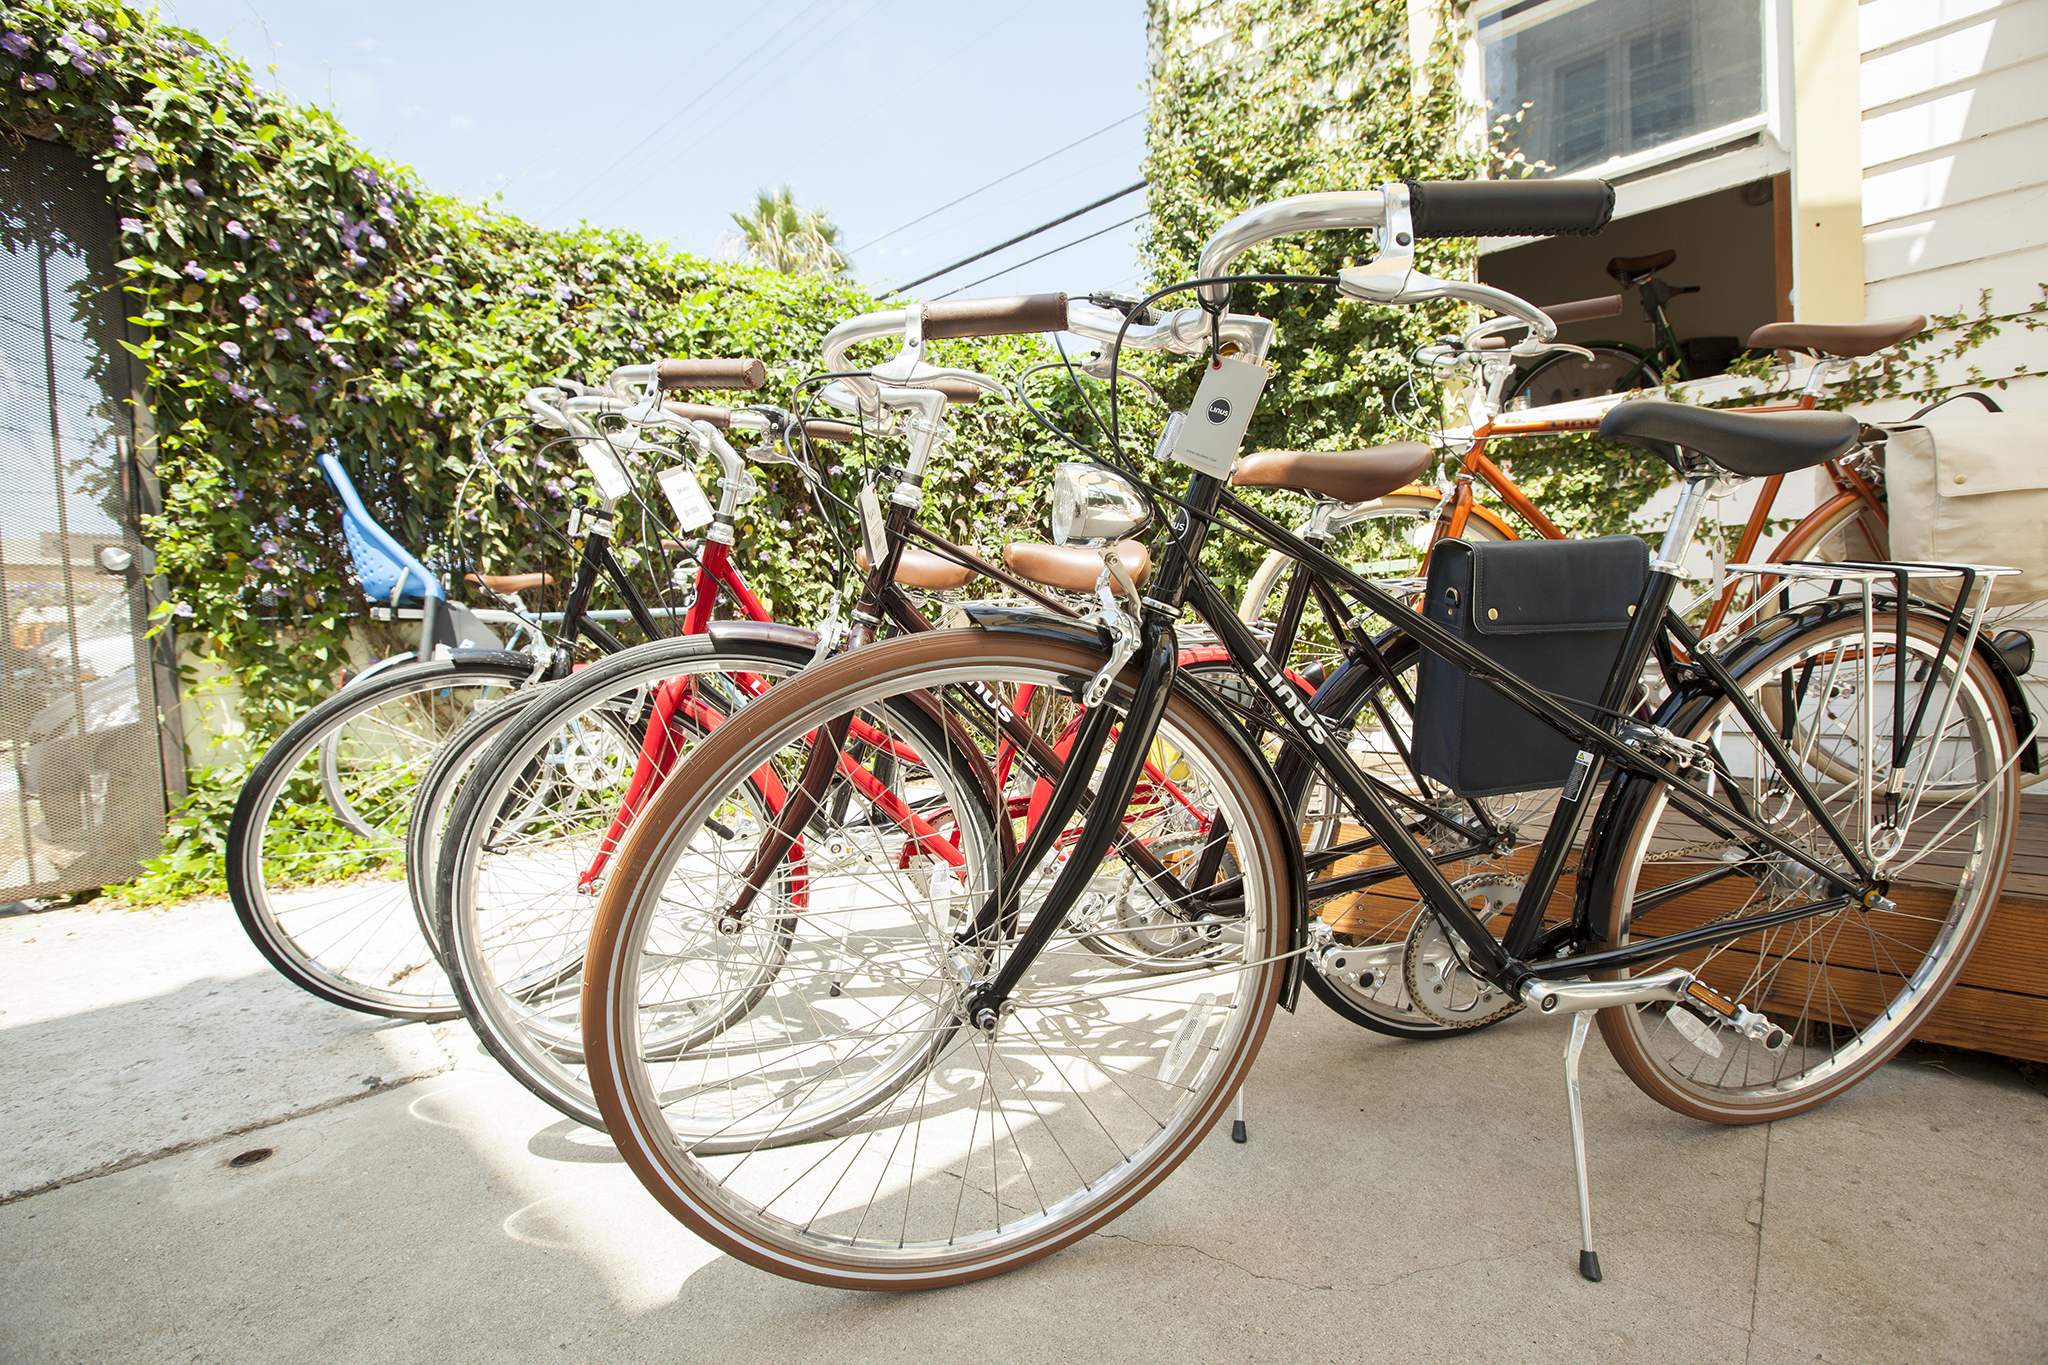 The best food, drink and shopping on Abbot Kinney